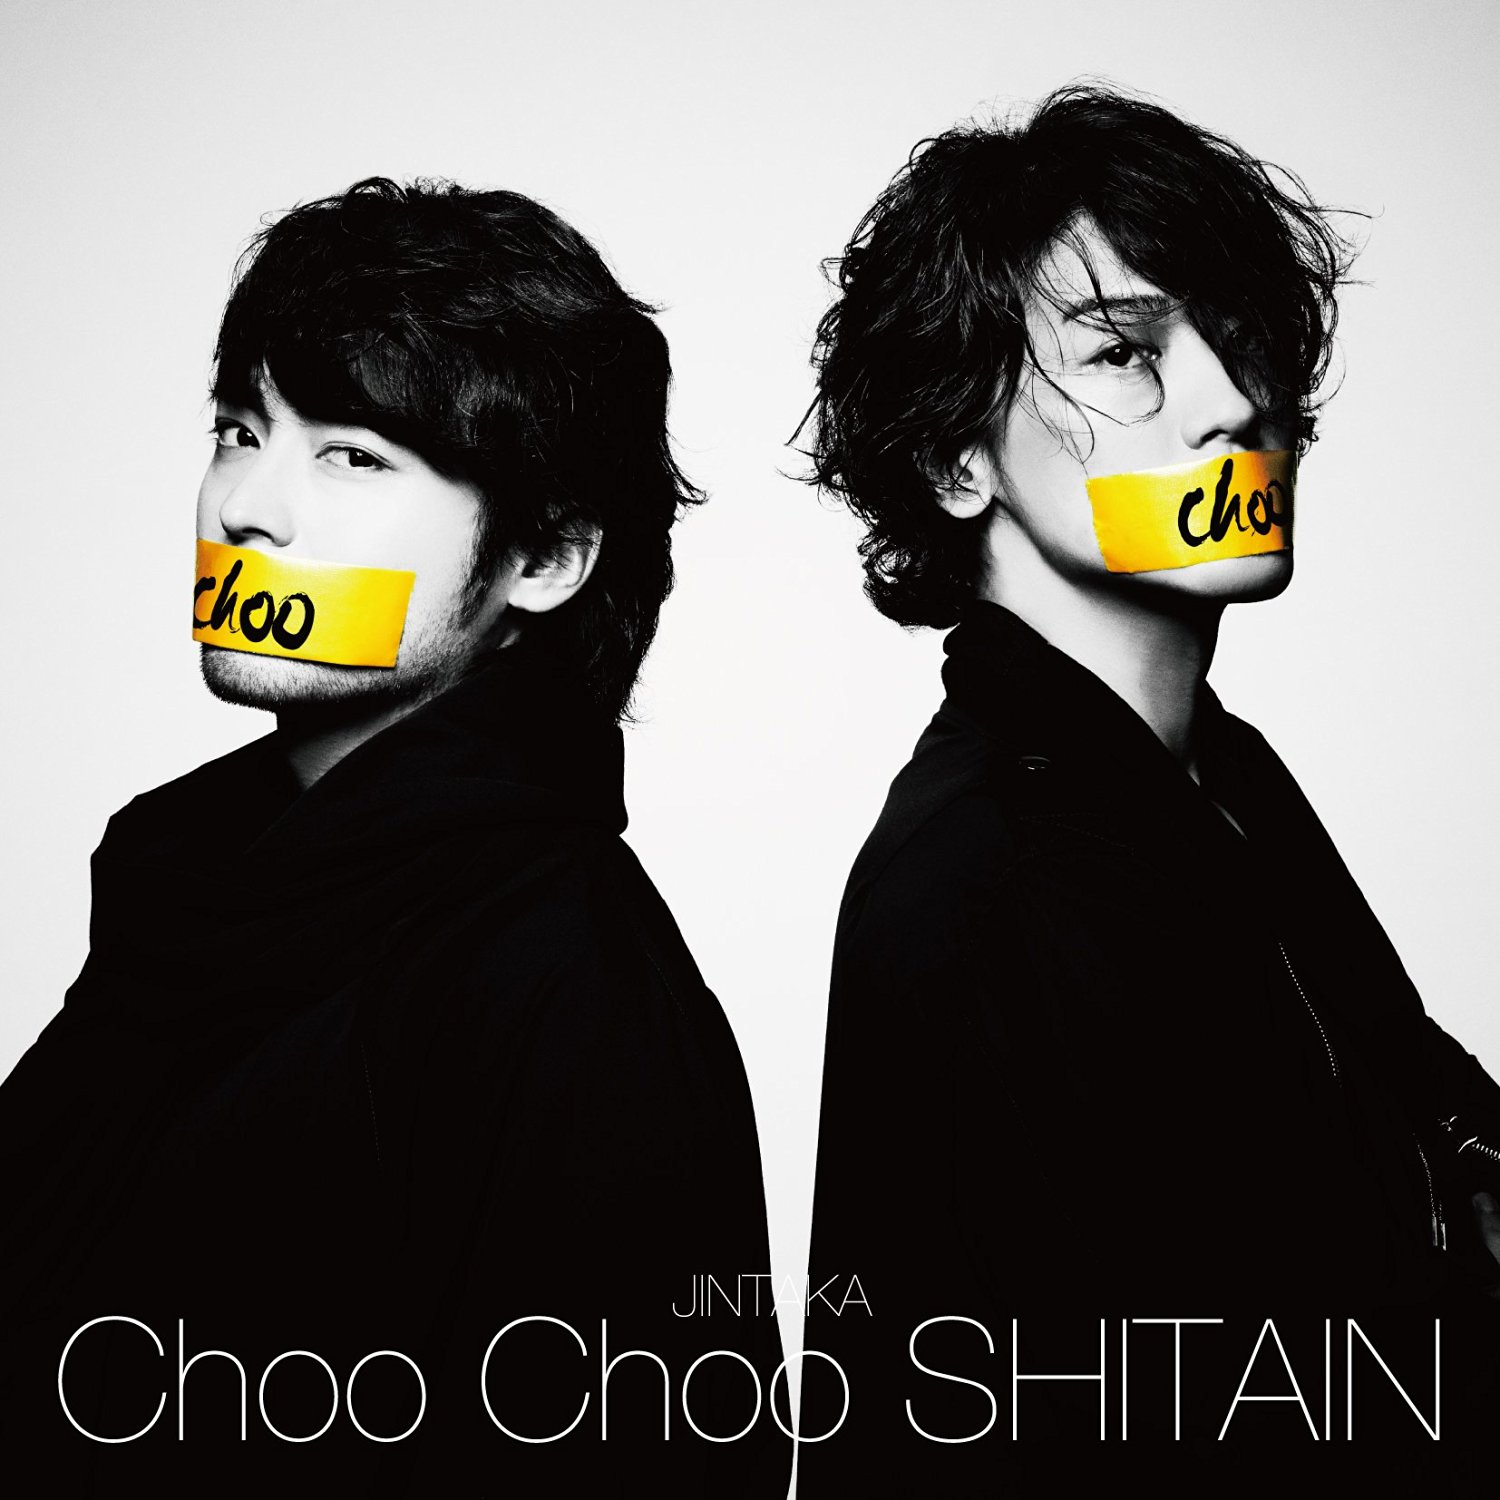 [Single] JINTAKA – Choo Choo SHITAIN (2016.09.21/MP3/RAR)